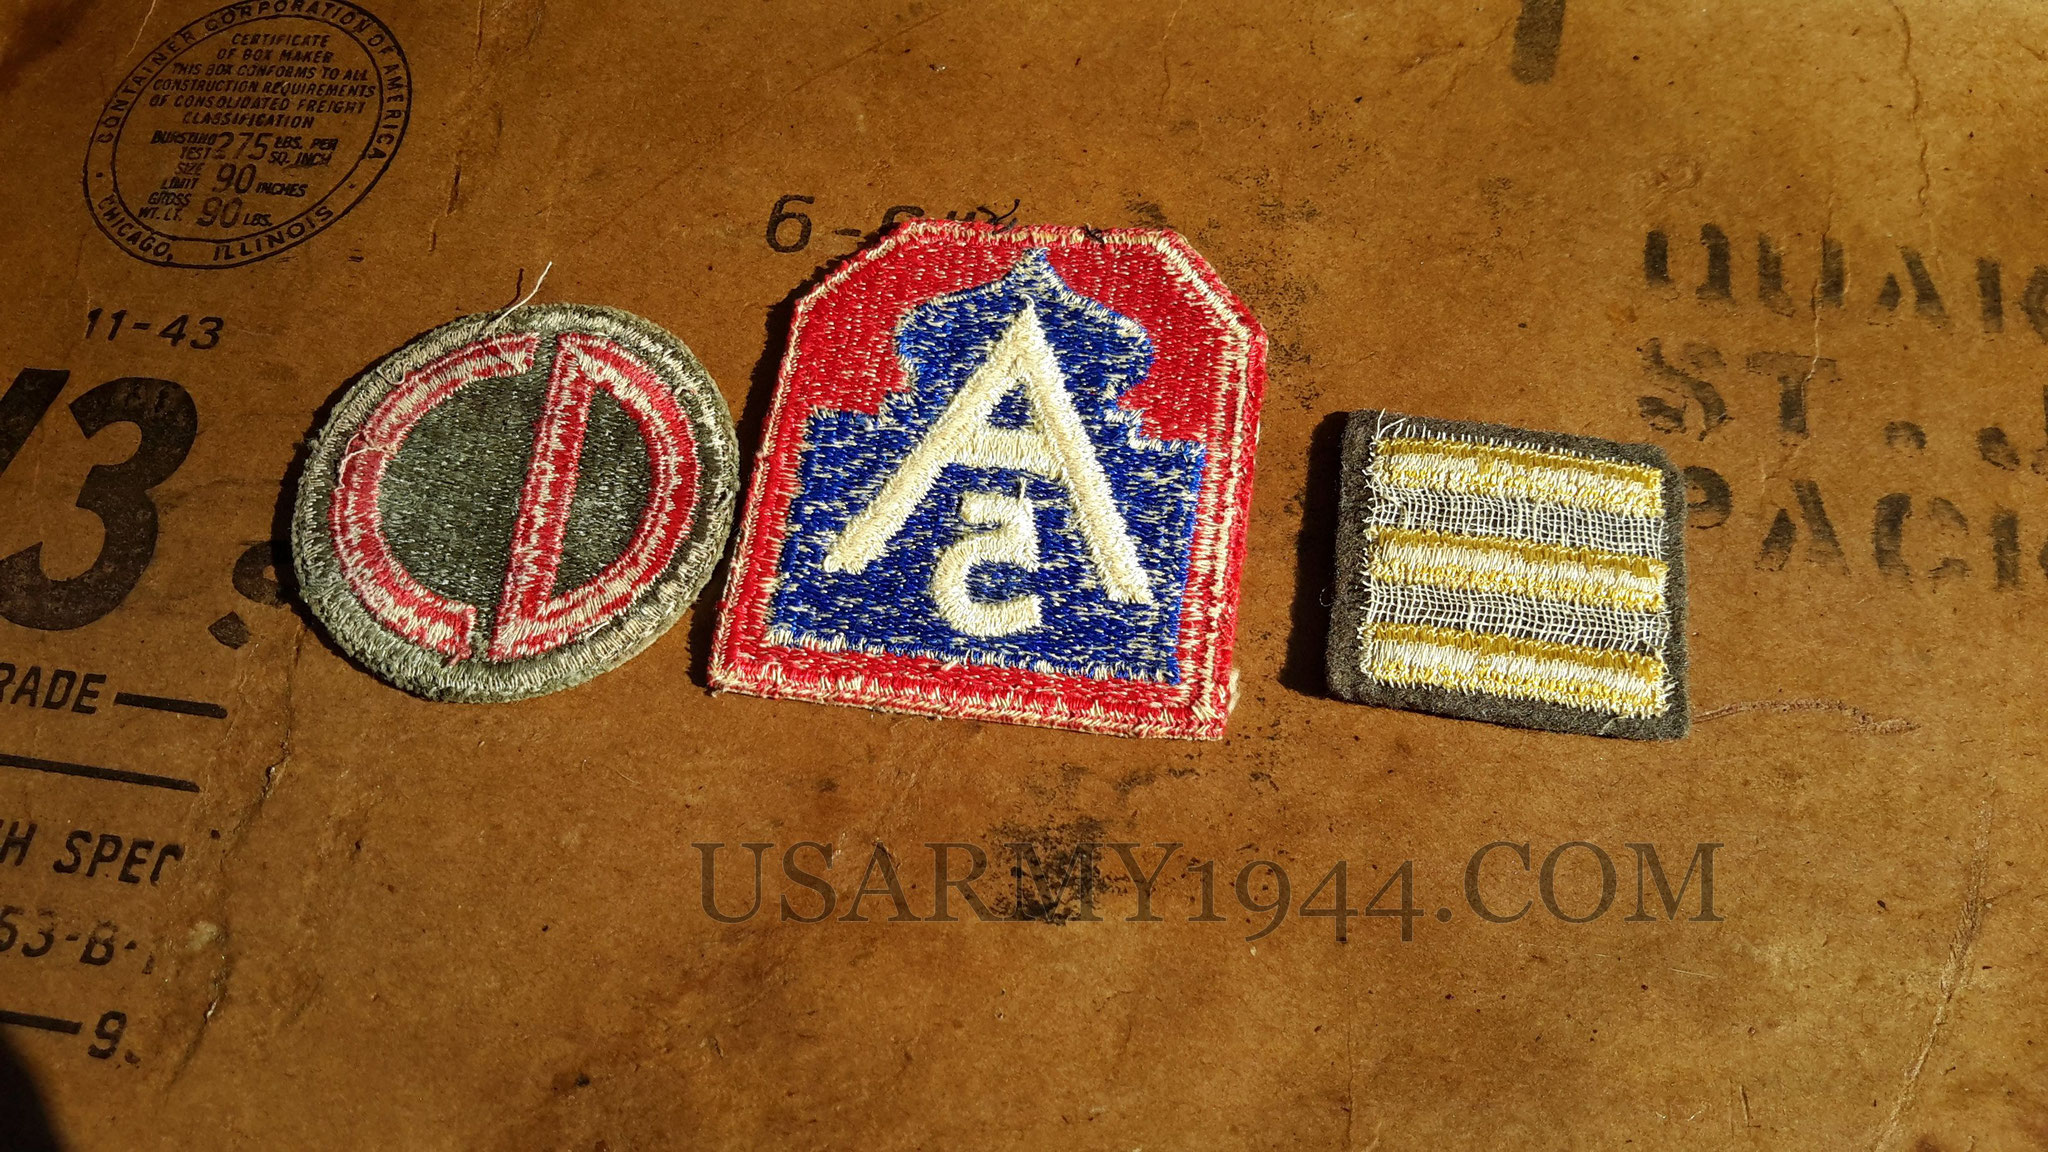 Retro patches